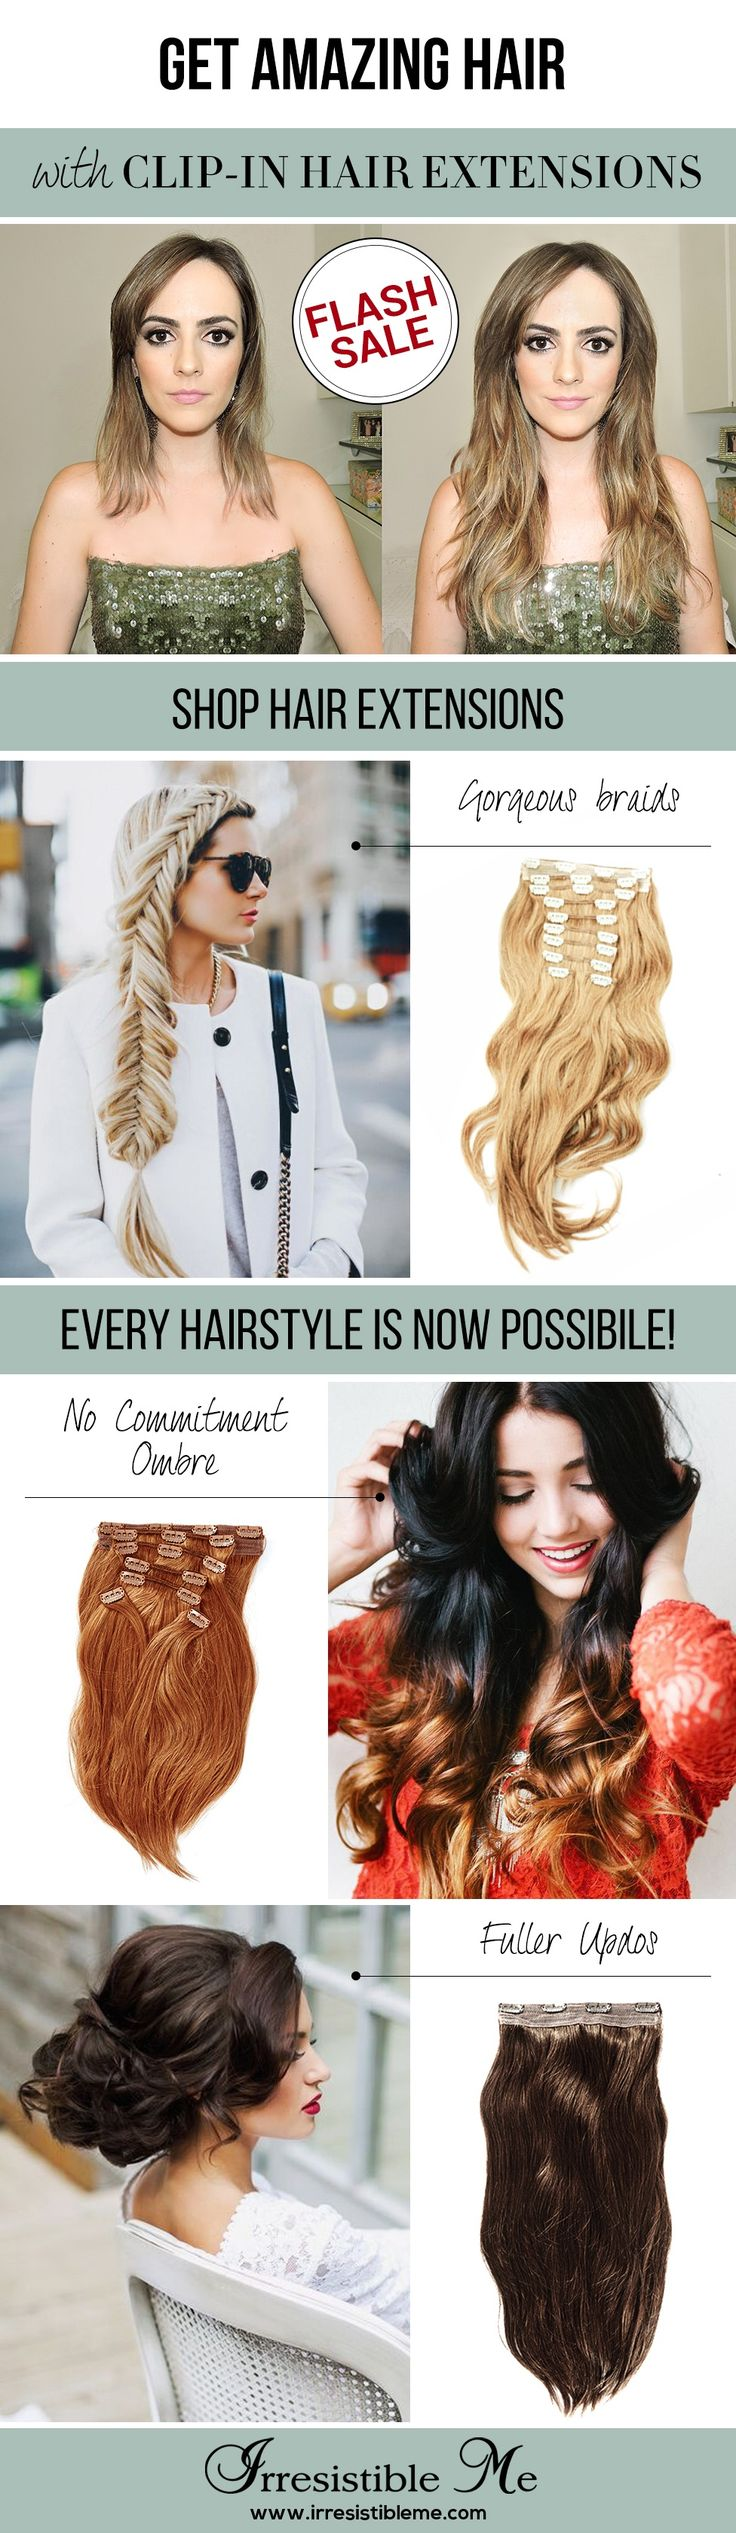 Make A Dramatic Hairstyle Change With Irresistible Me Human Remy Clip In Hair Extensions You Can Add Length And Volume Matter Of Minutes Get